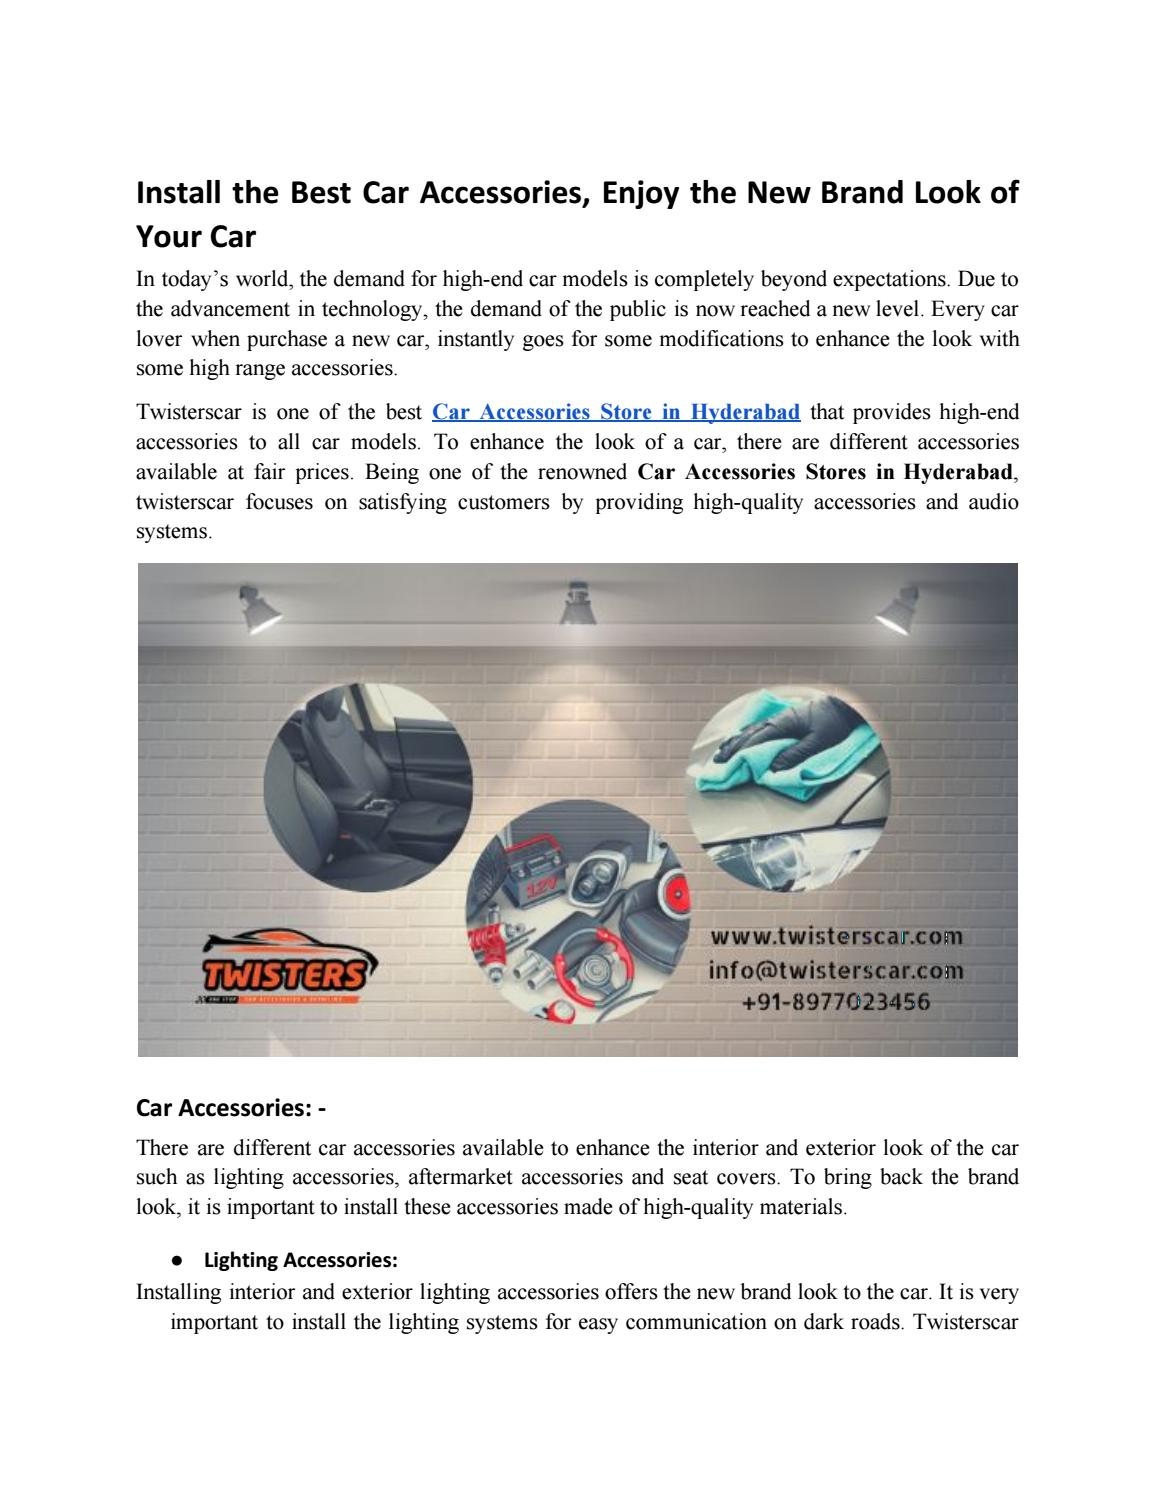 Install The Best Car Accessories Enjoy The New Brand Look Of Your Car By Twisters Hyd Issuu